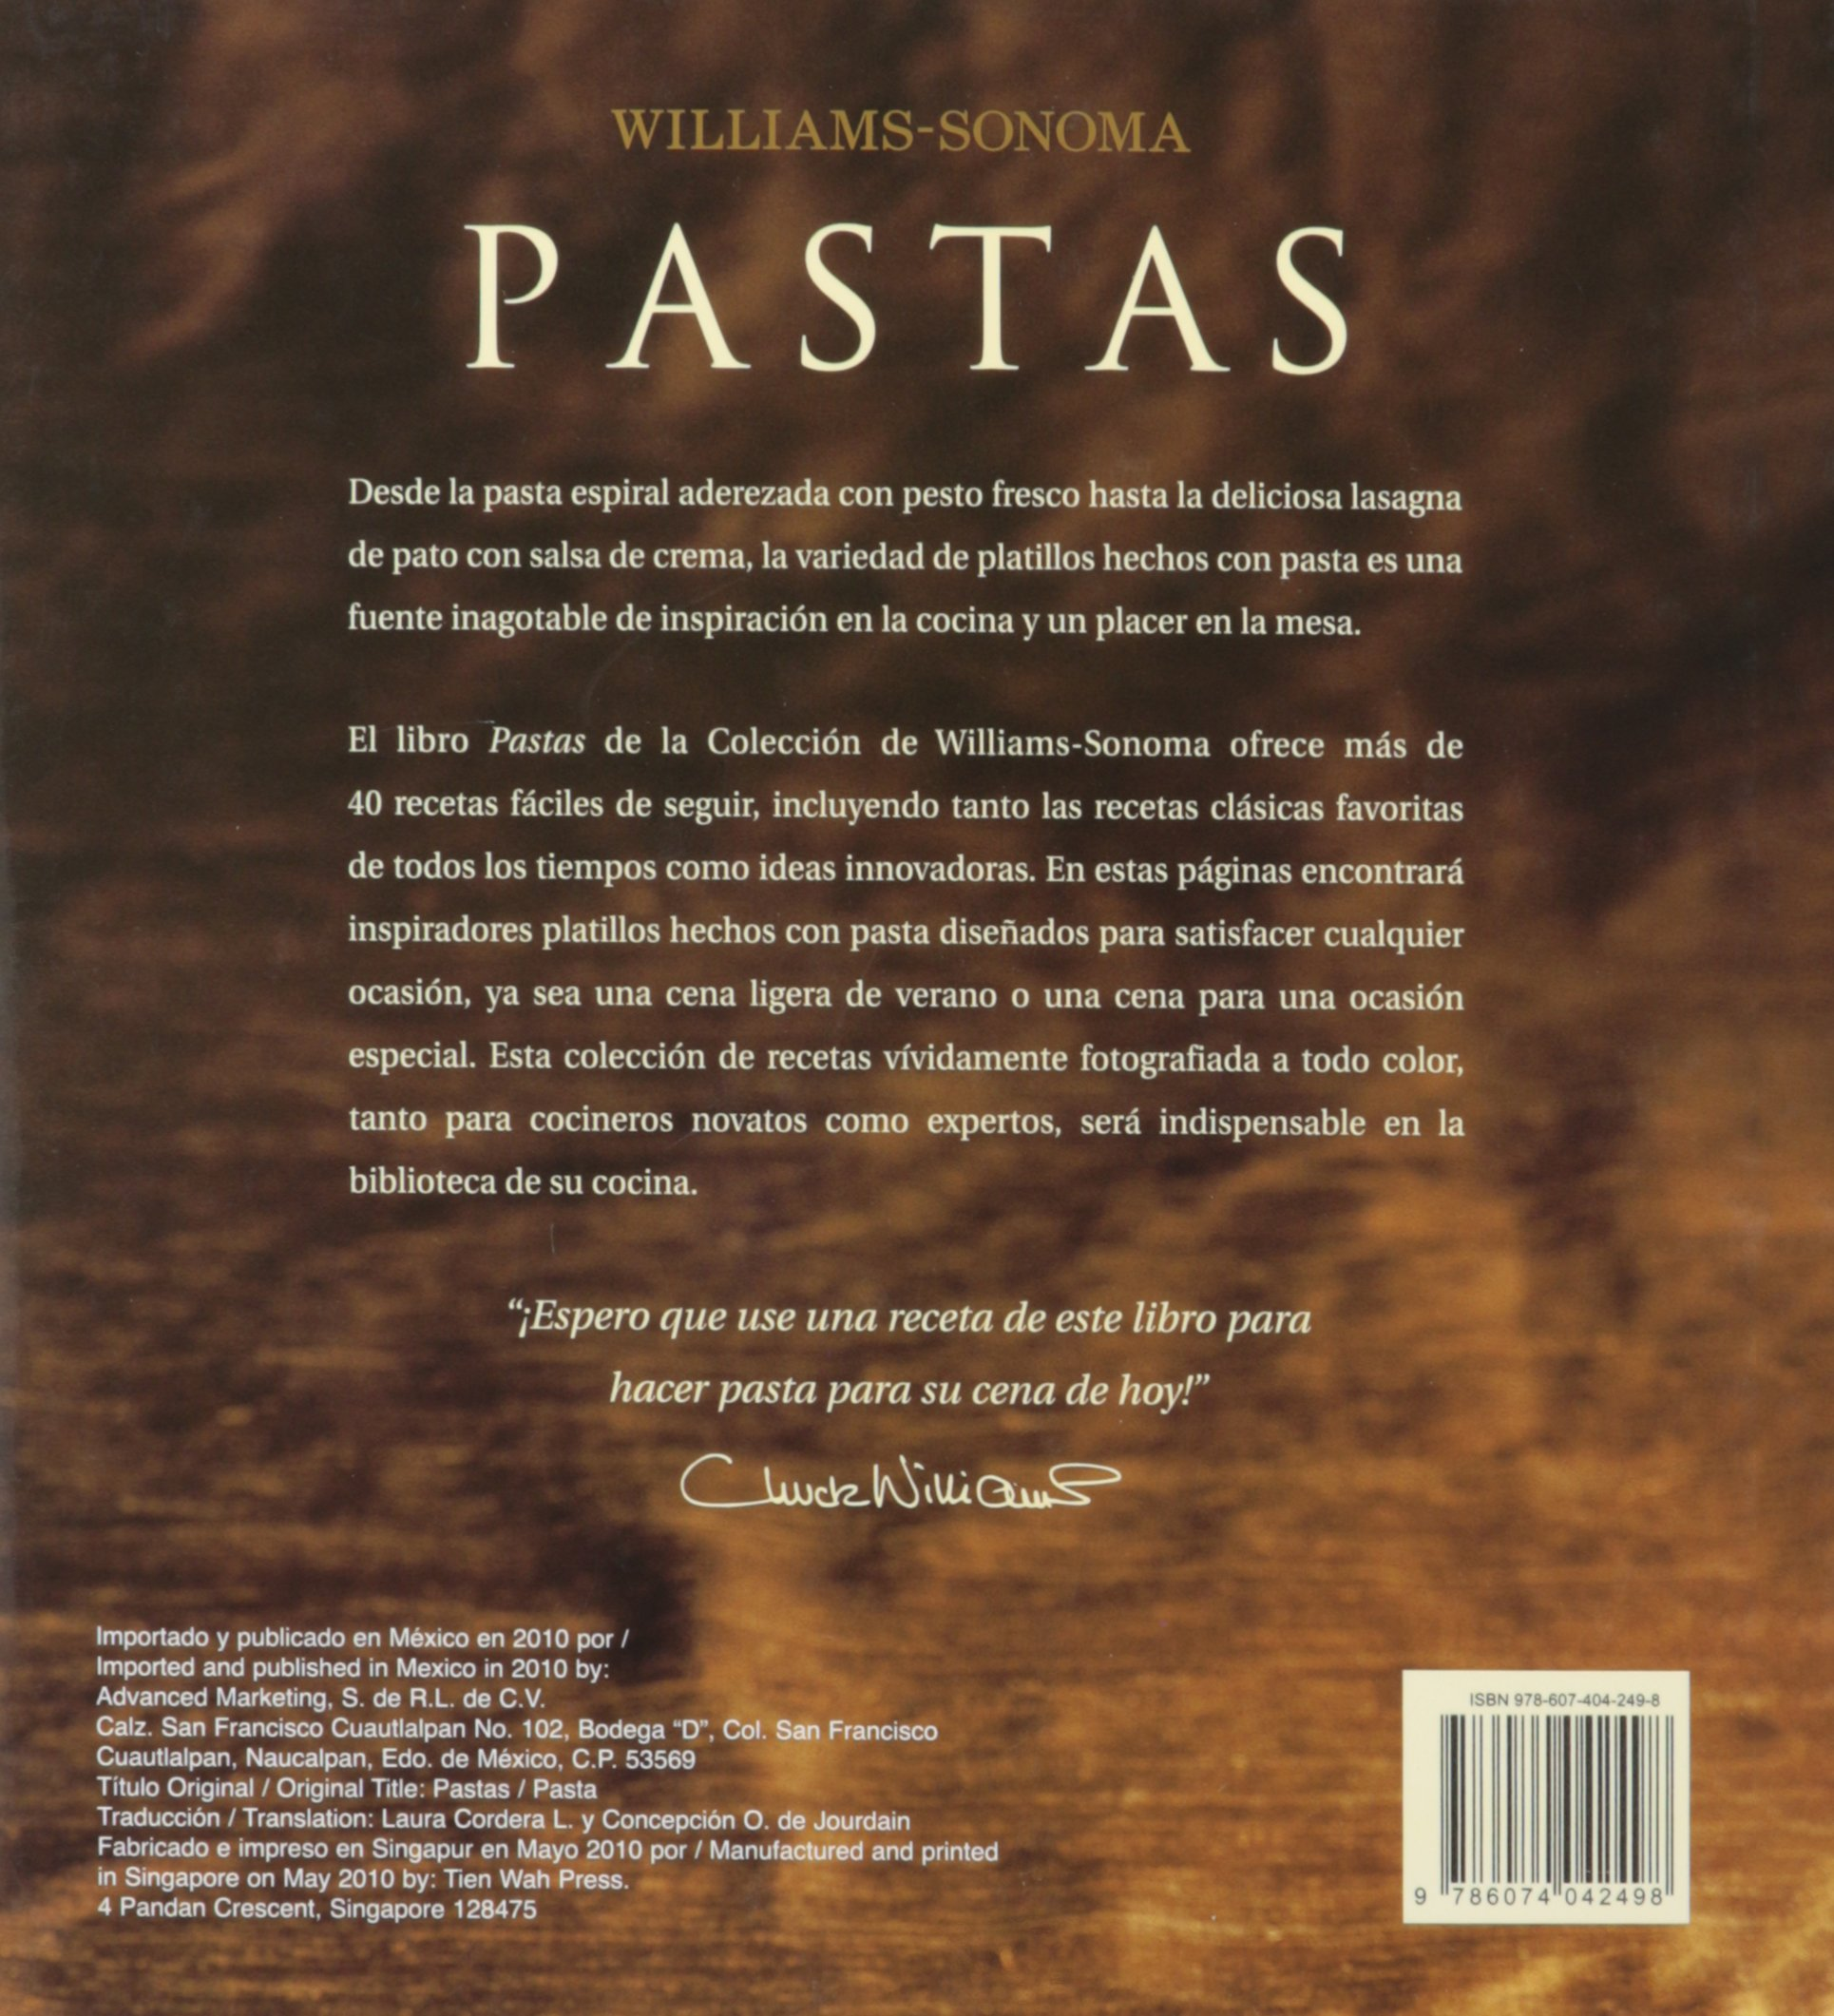 Pastas / Pasta (Williams-Sonoma) (Spanish Edition): Erica De Mane, Chuck Williams, Maren Caruso, Concepcion O. De Jourdain, Laura Cordera: 9786074042498: ...